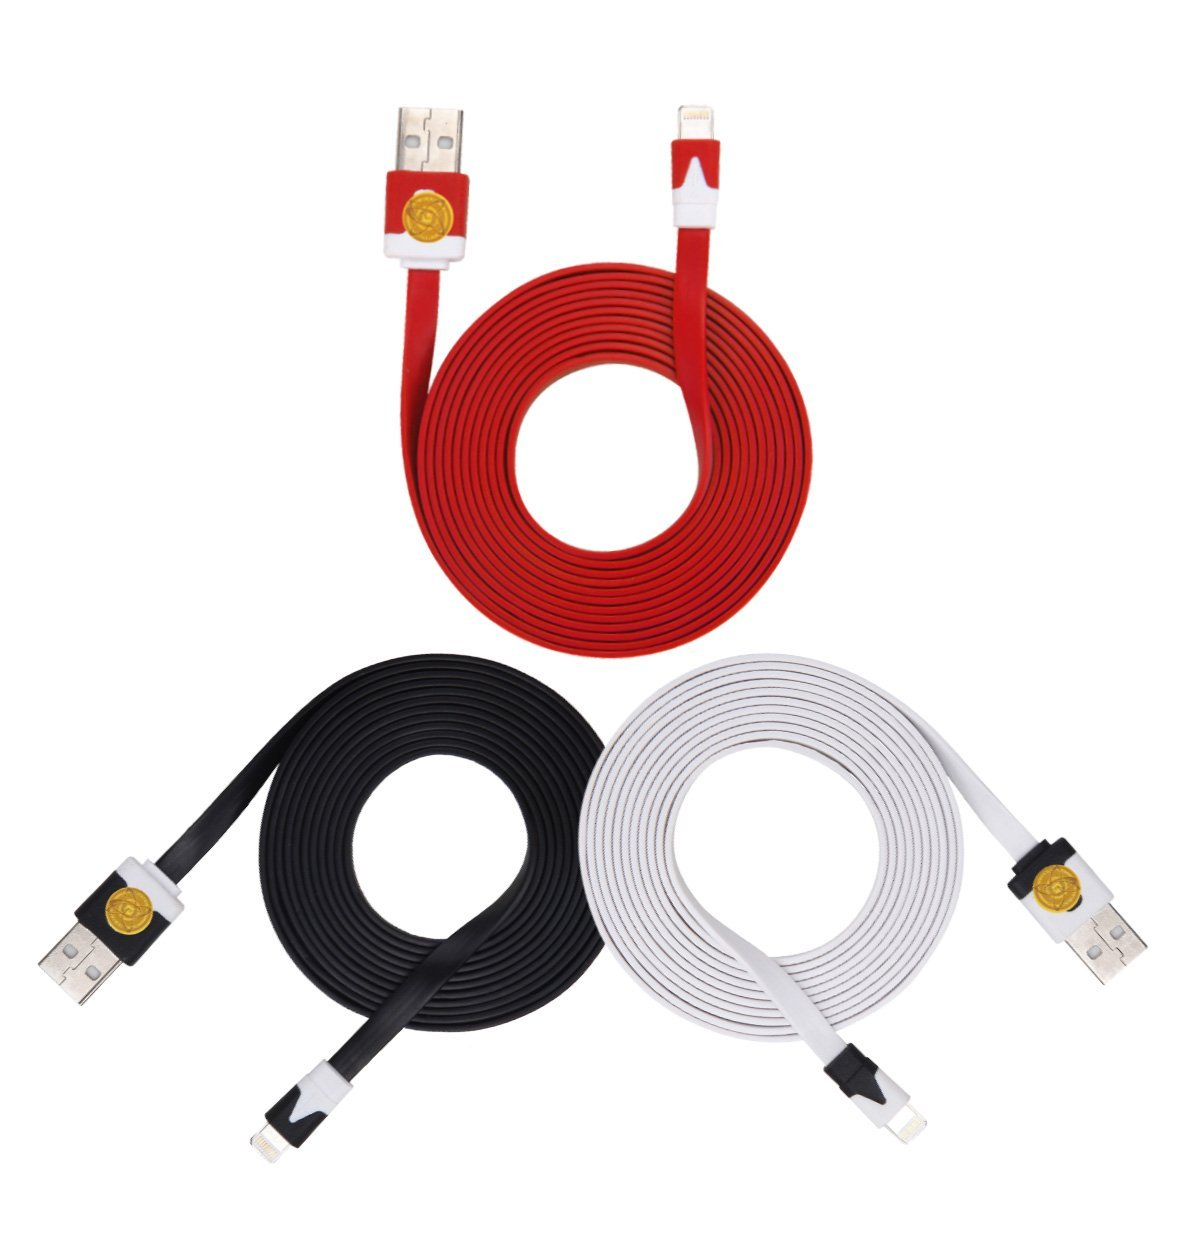 2M Heavy Duty Flat Noodle Lightning USB Cable for Apple iPhone 6,6S -Blk Red Wte